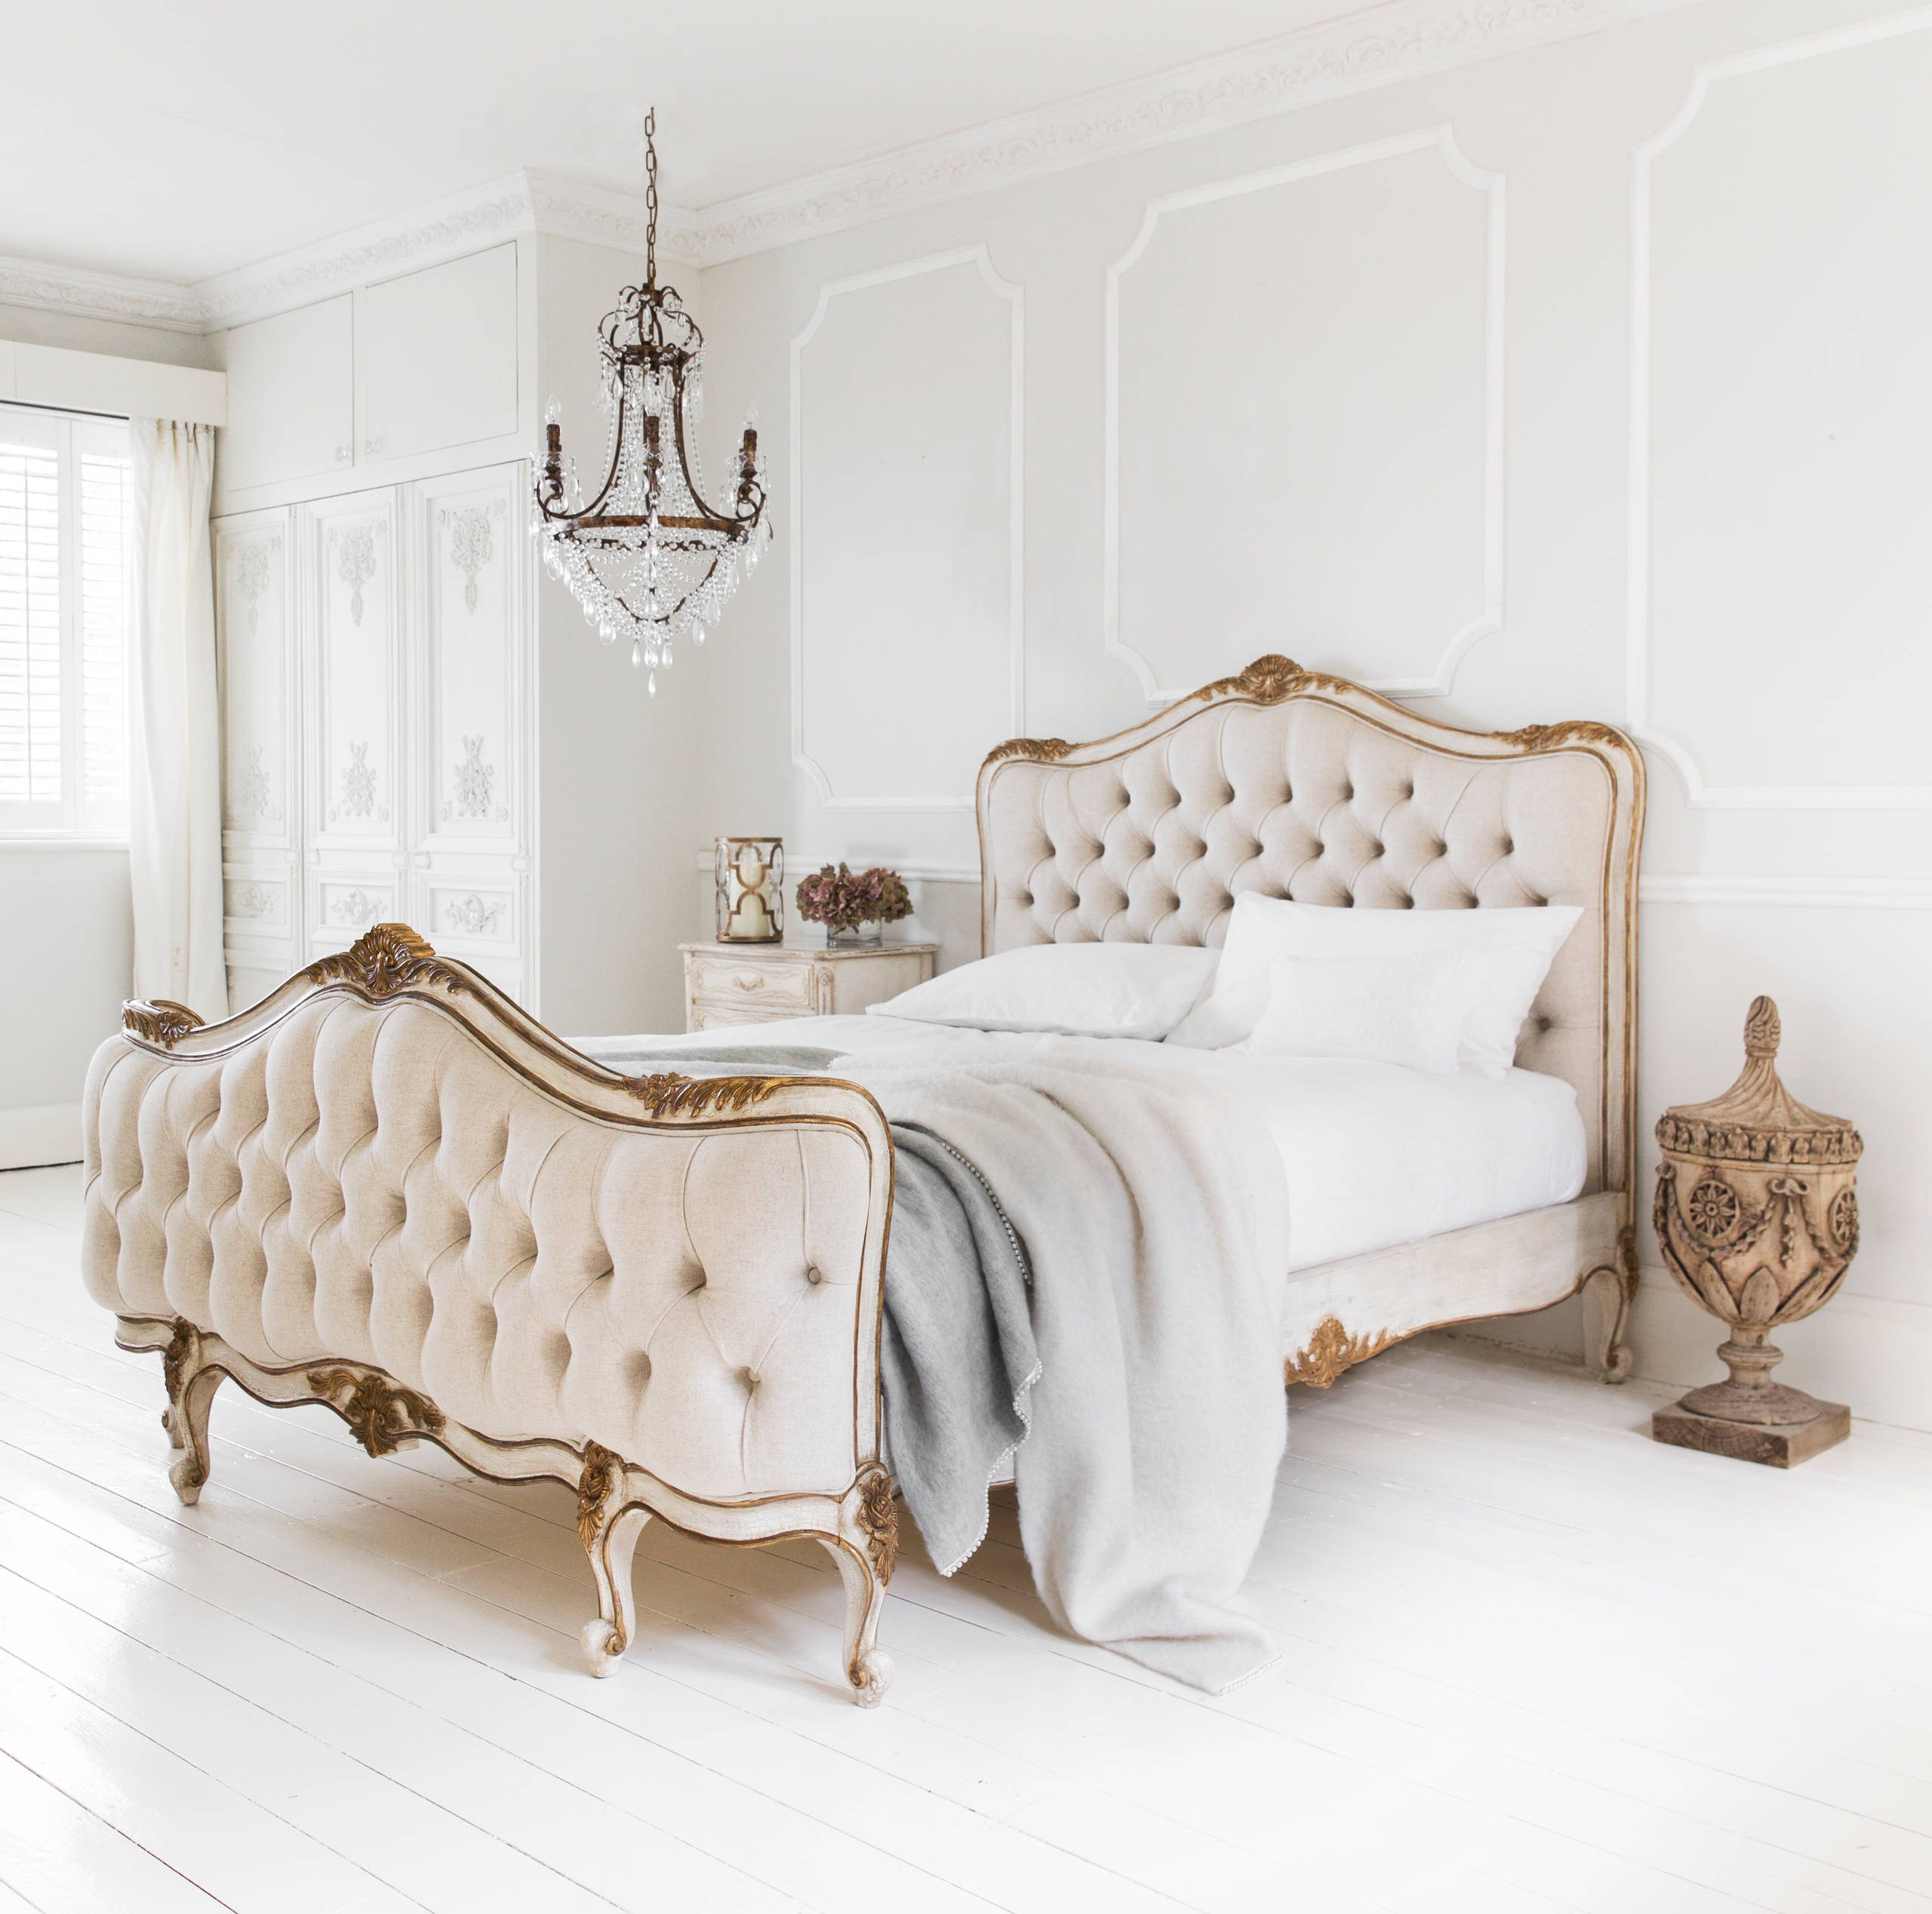 3 secrets to french decorating versailles inspired rooms. Black Bedroom Furniture Sets. Home Design Ideas